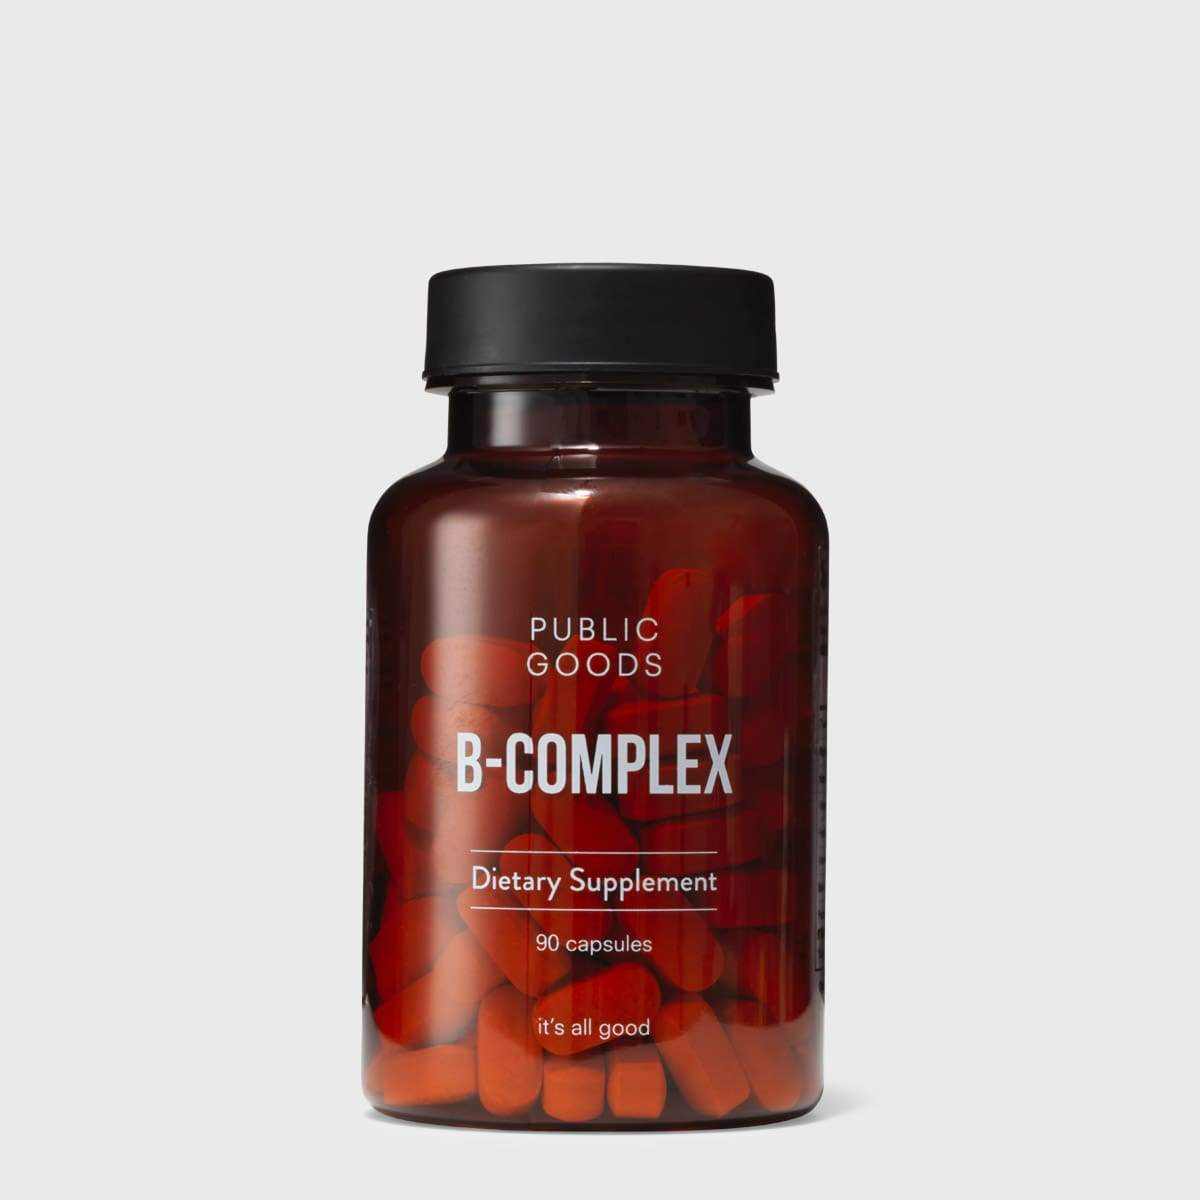 bottle of public goods b-complex supplement capsules